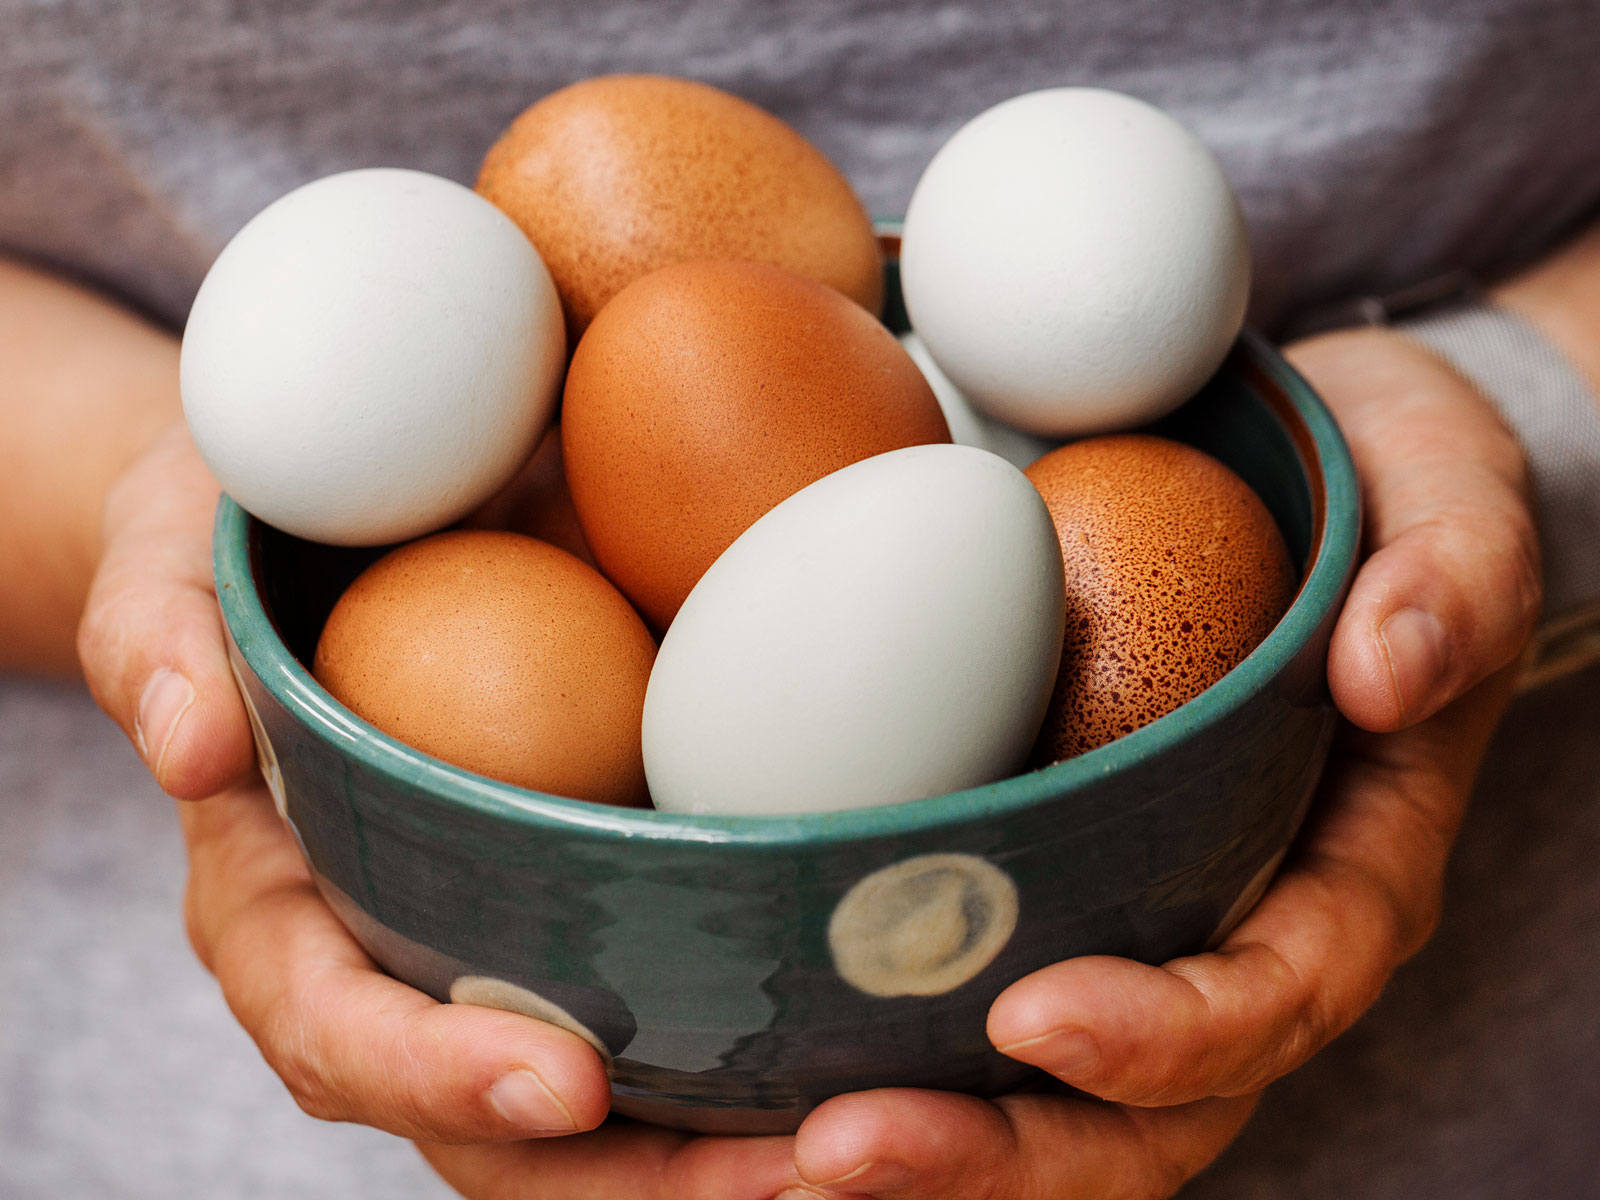 Chefs Don't Refrigerate Eggs